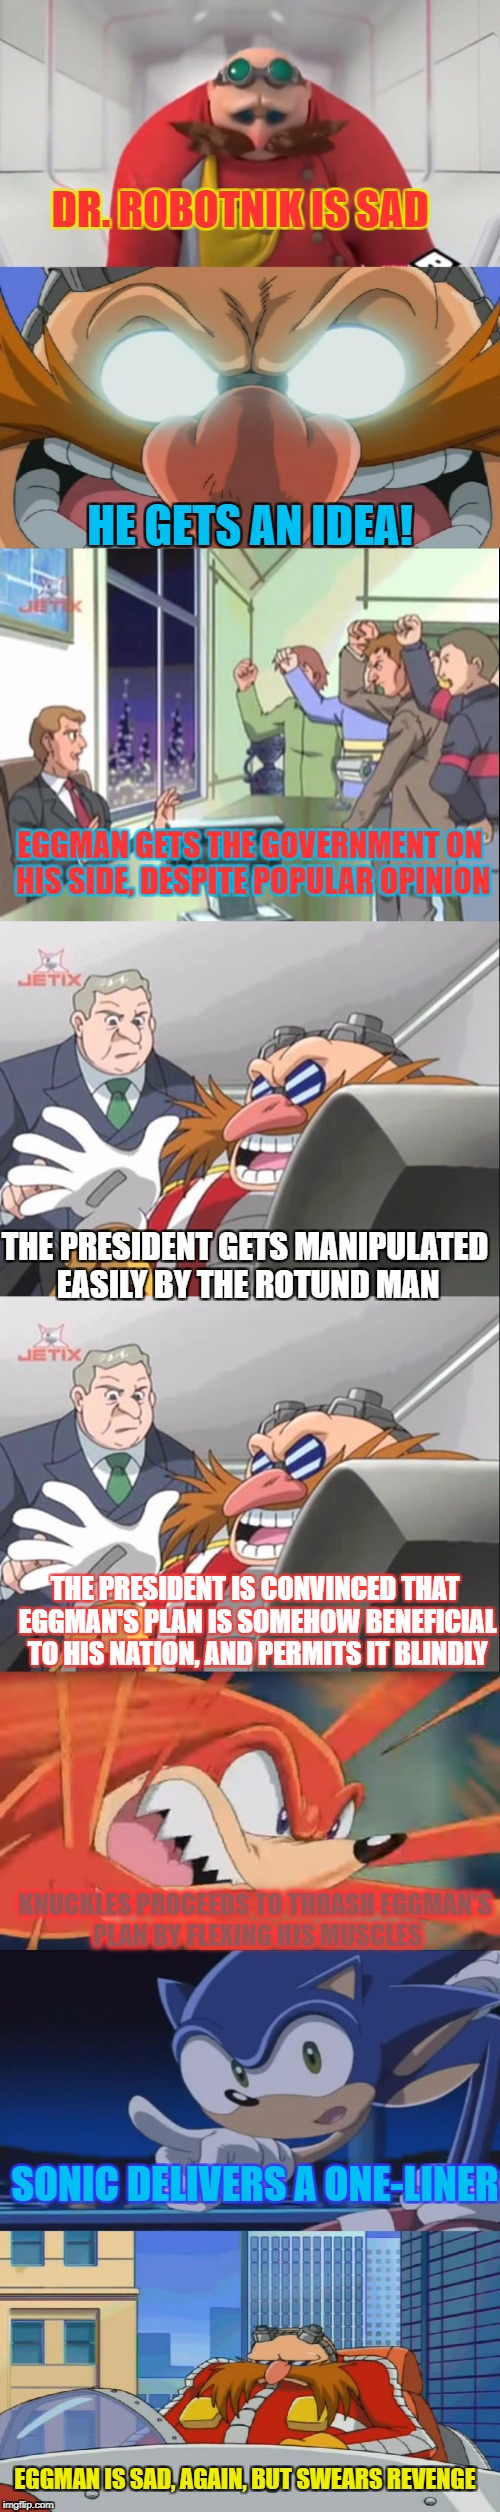 Sonic X in a Nutshell | DR. ROBOTNIK IS SAD SONIC DELIVERS A ONE-LINER HE GETS AN IDEA! EGGMAN GETS THE GOVERNMENT ON HIS SIDE, DESPITE POPULAR OPINION THE PRESIDEN | image tagged in sonic x,sonic the hedgehog,eggman,story,in a nutshell | made w/ Imgflip meme maker